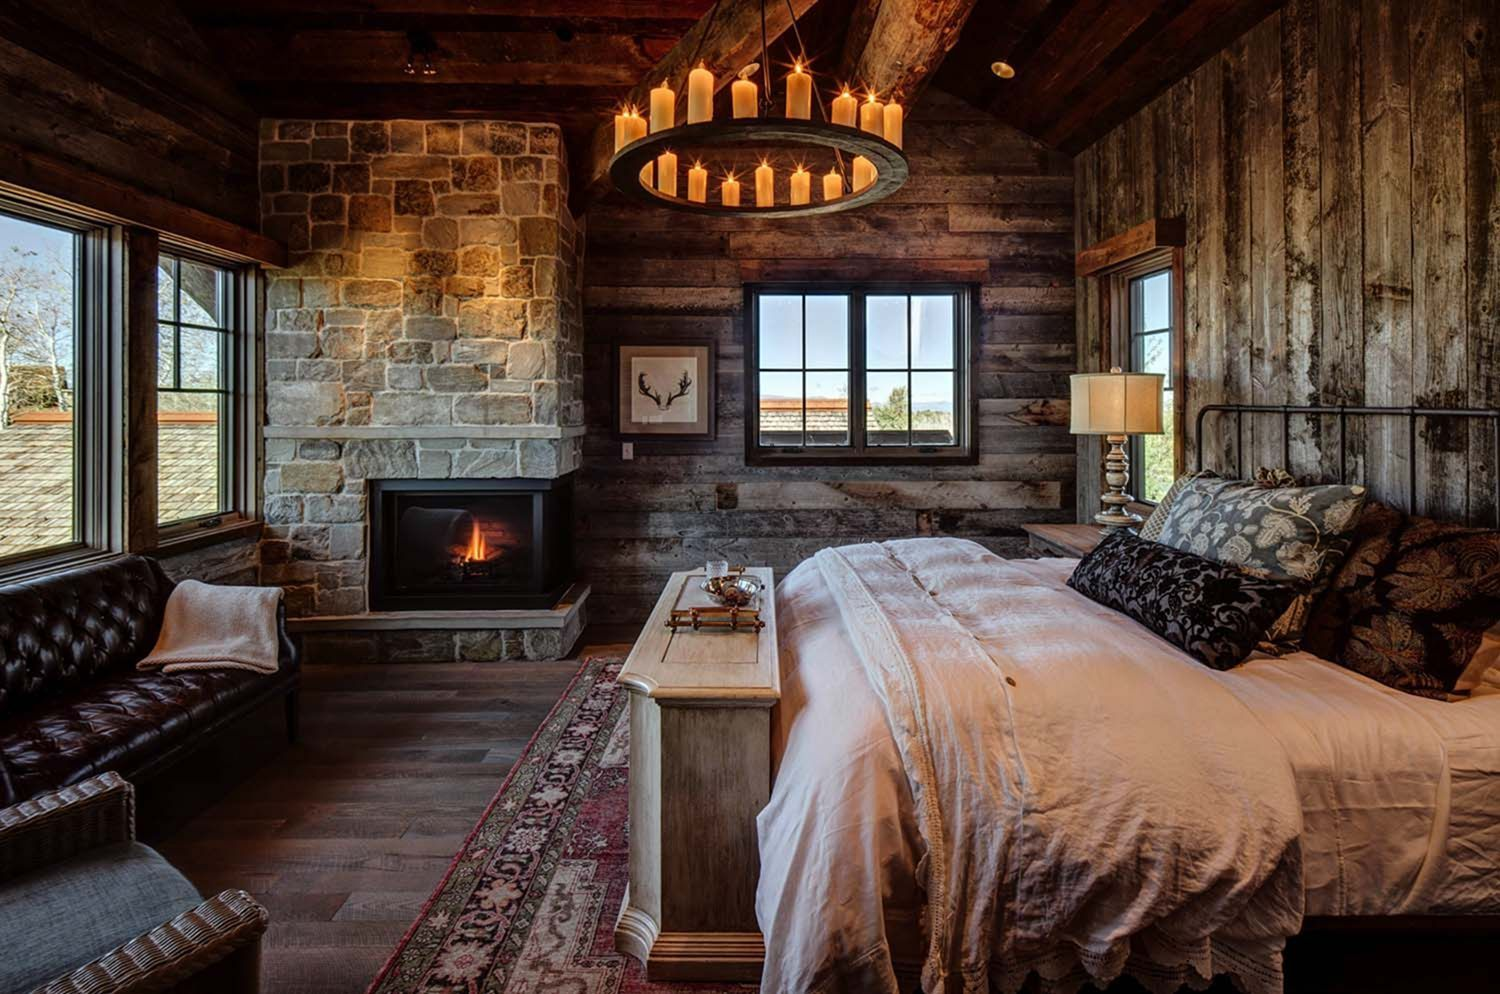 Schlafzimmer Rustikal Modern Interesting 25+ Modern Rustic Bedroom Decor Ideas For Your Home #modernrusticbedroom A Bedr… | Hütte Schlafzimmer, Rustikales Schlafzimmerdesign, Kabinenausstattung